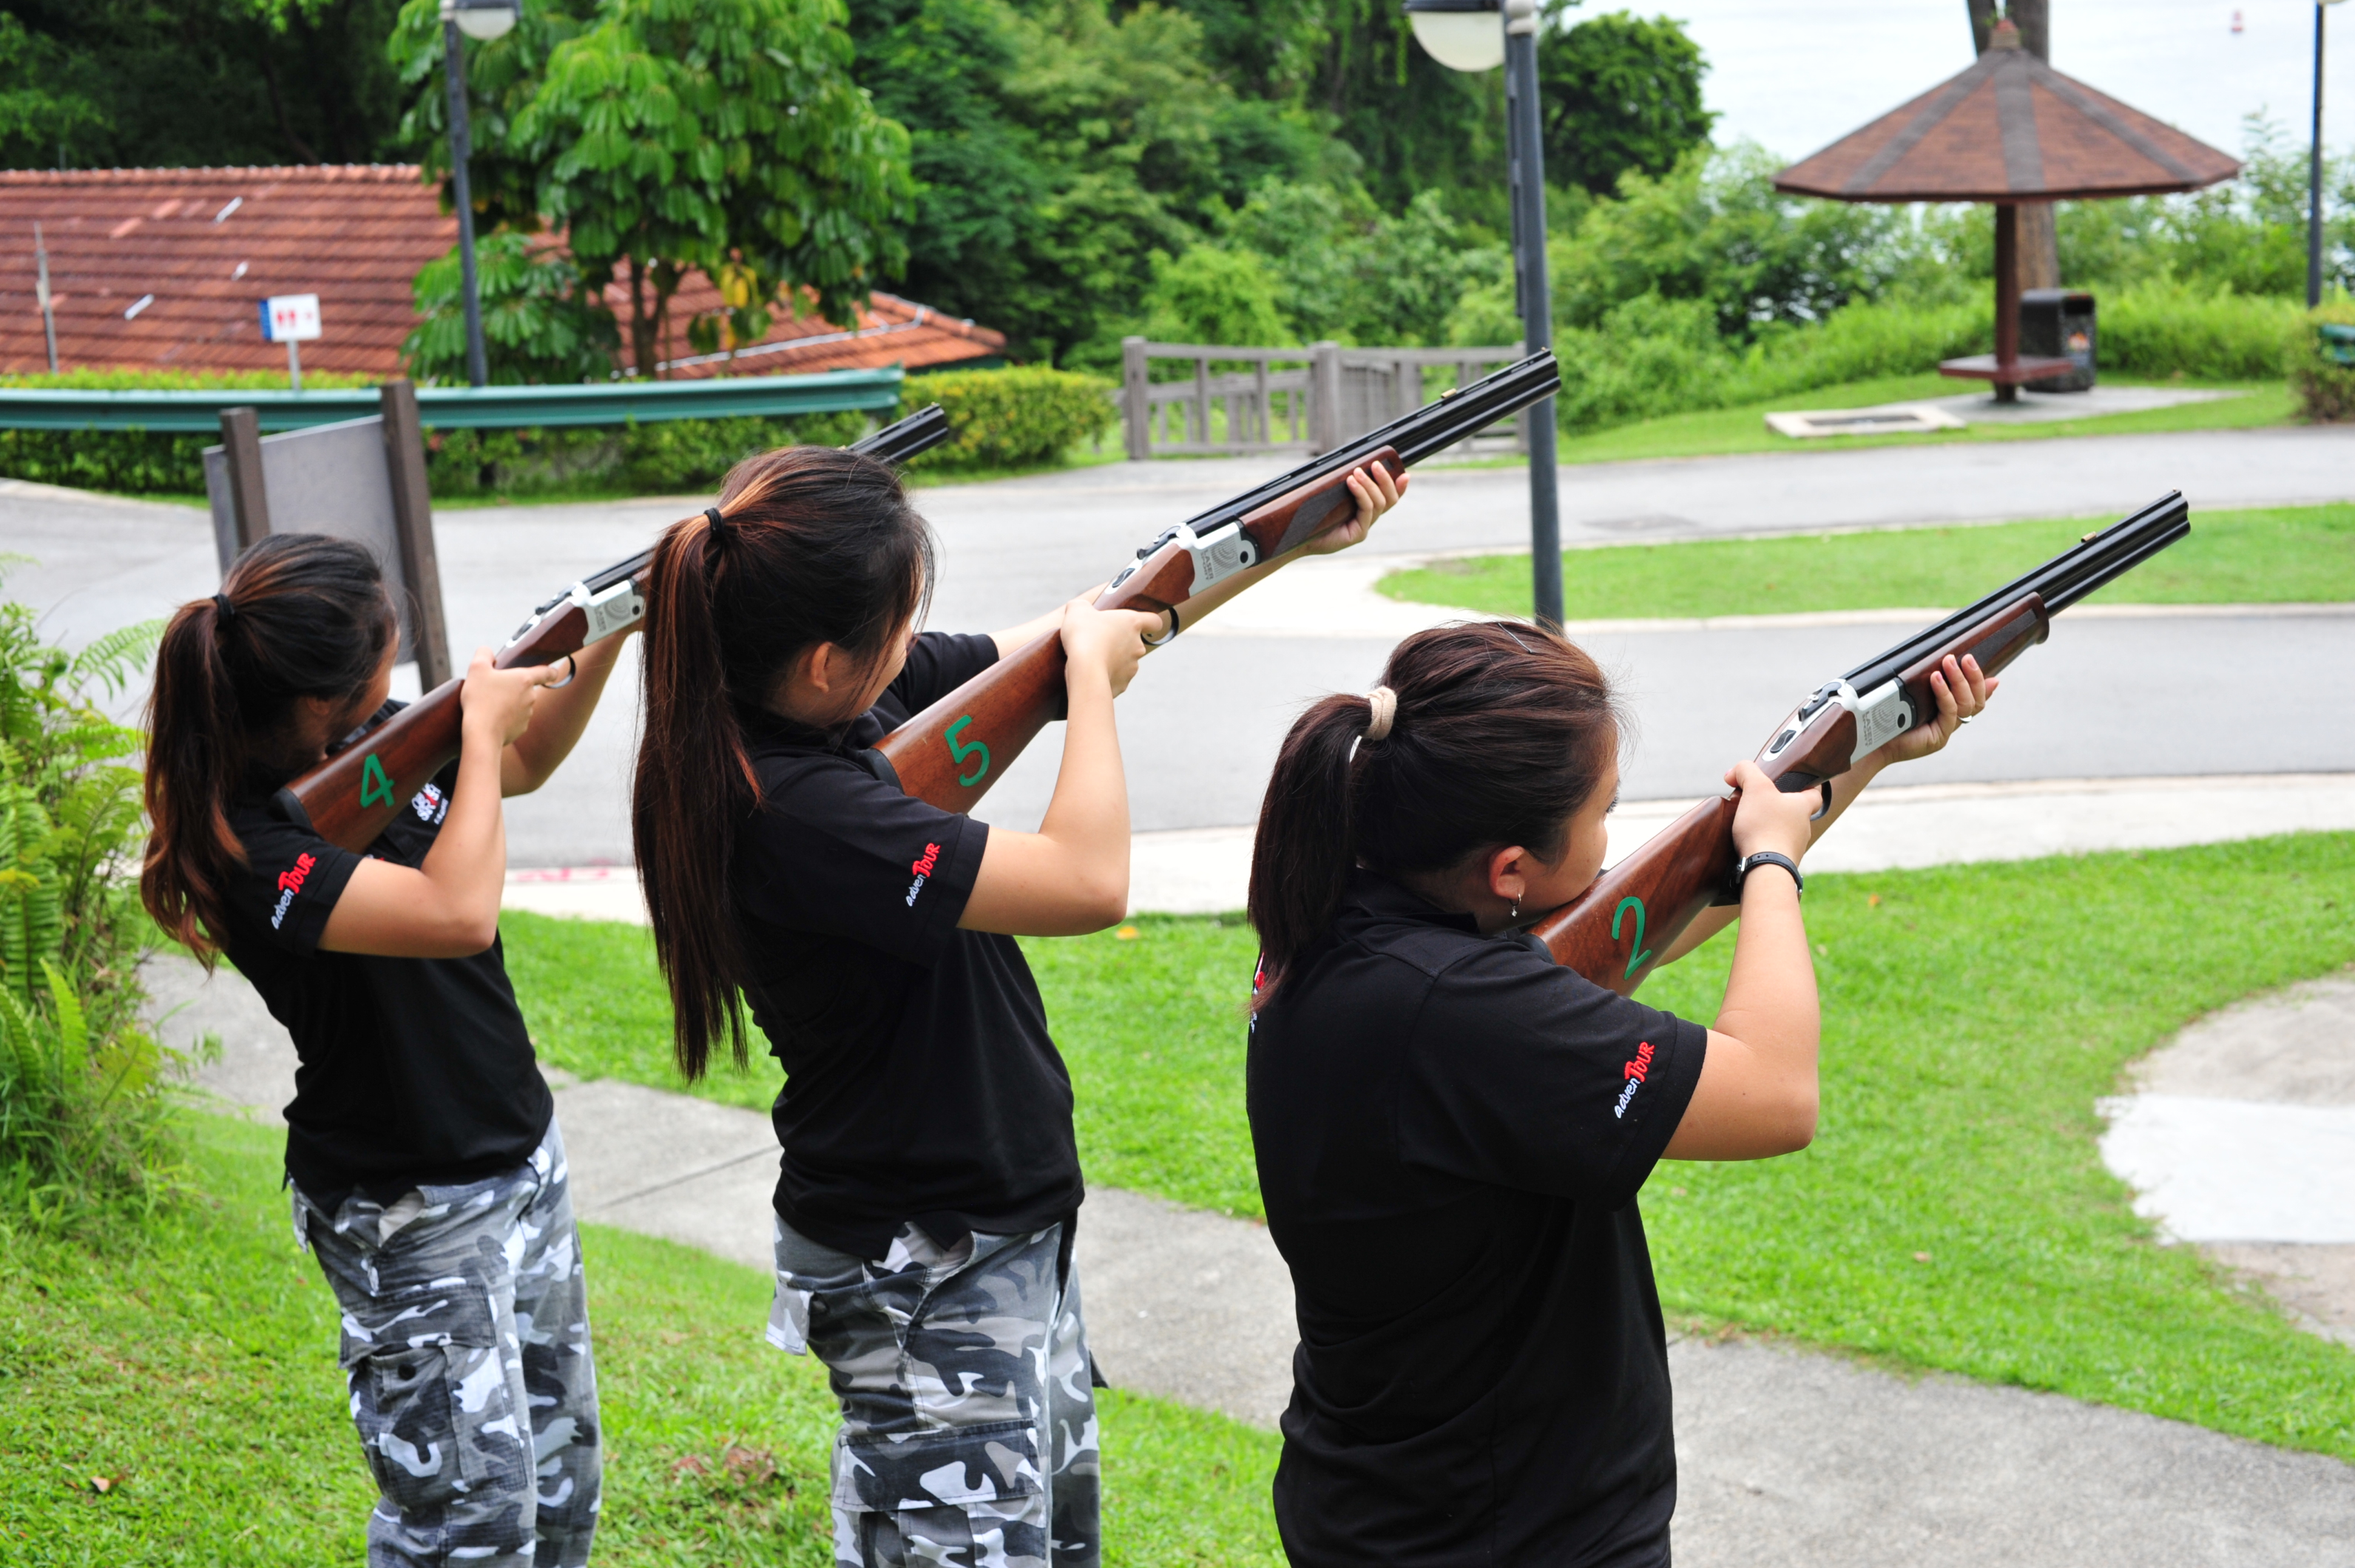 Laser Tag Laser Clay Pigeon Shooting